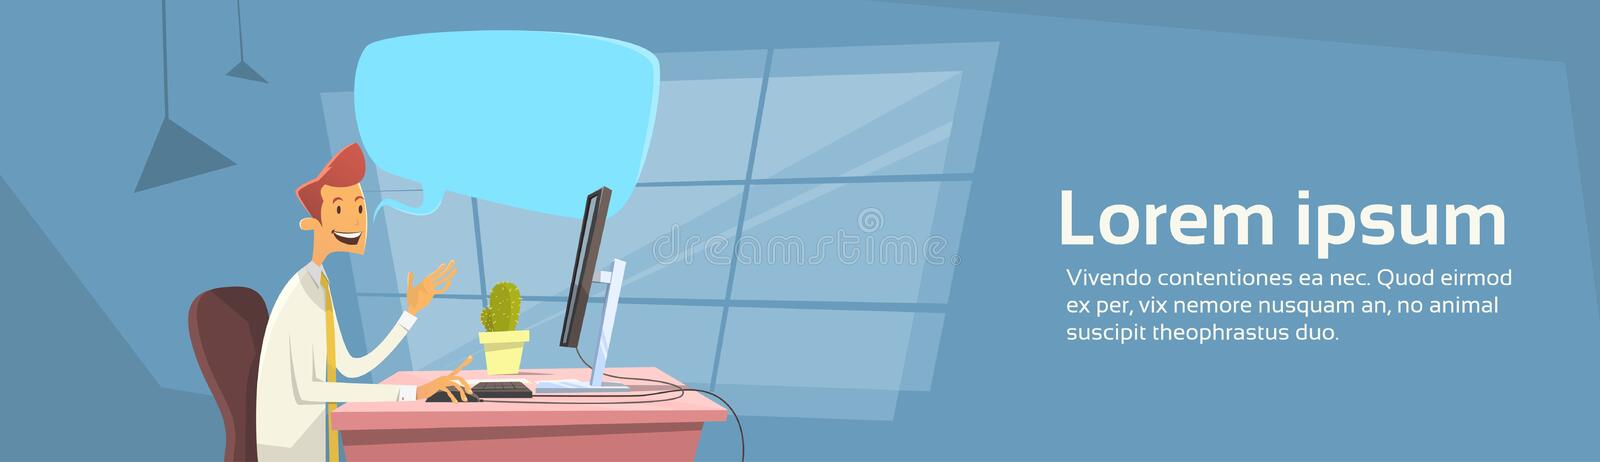 Business Man Office Workplace Desktop Computer Send Message Chat Communication Banner With Copy Space stock illustration